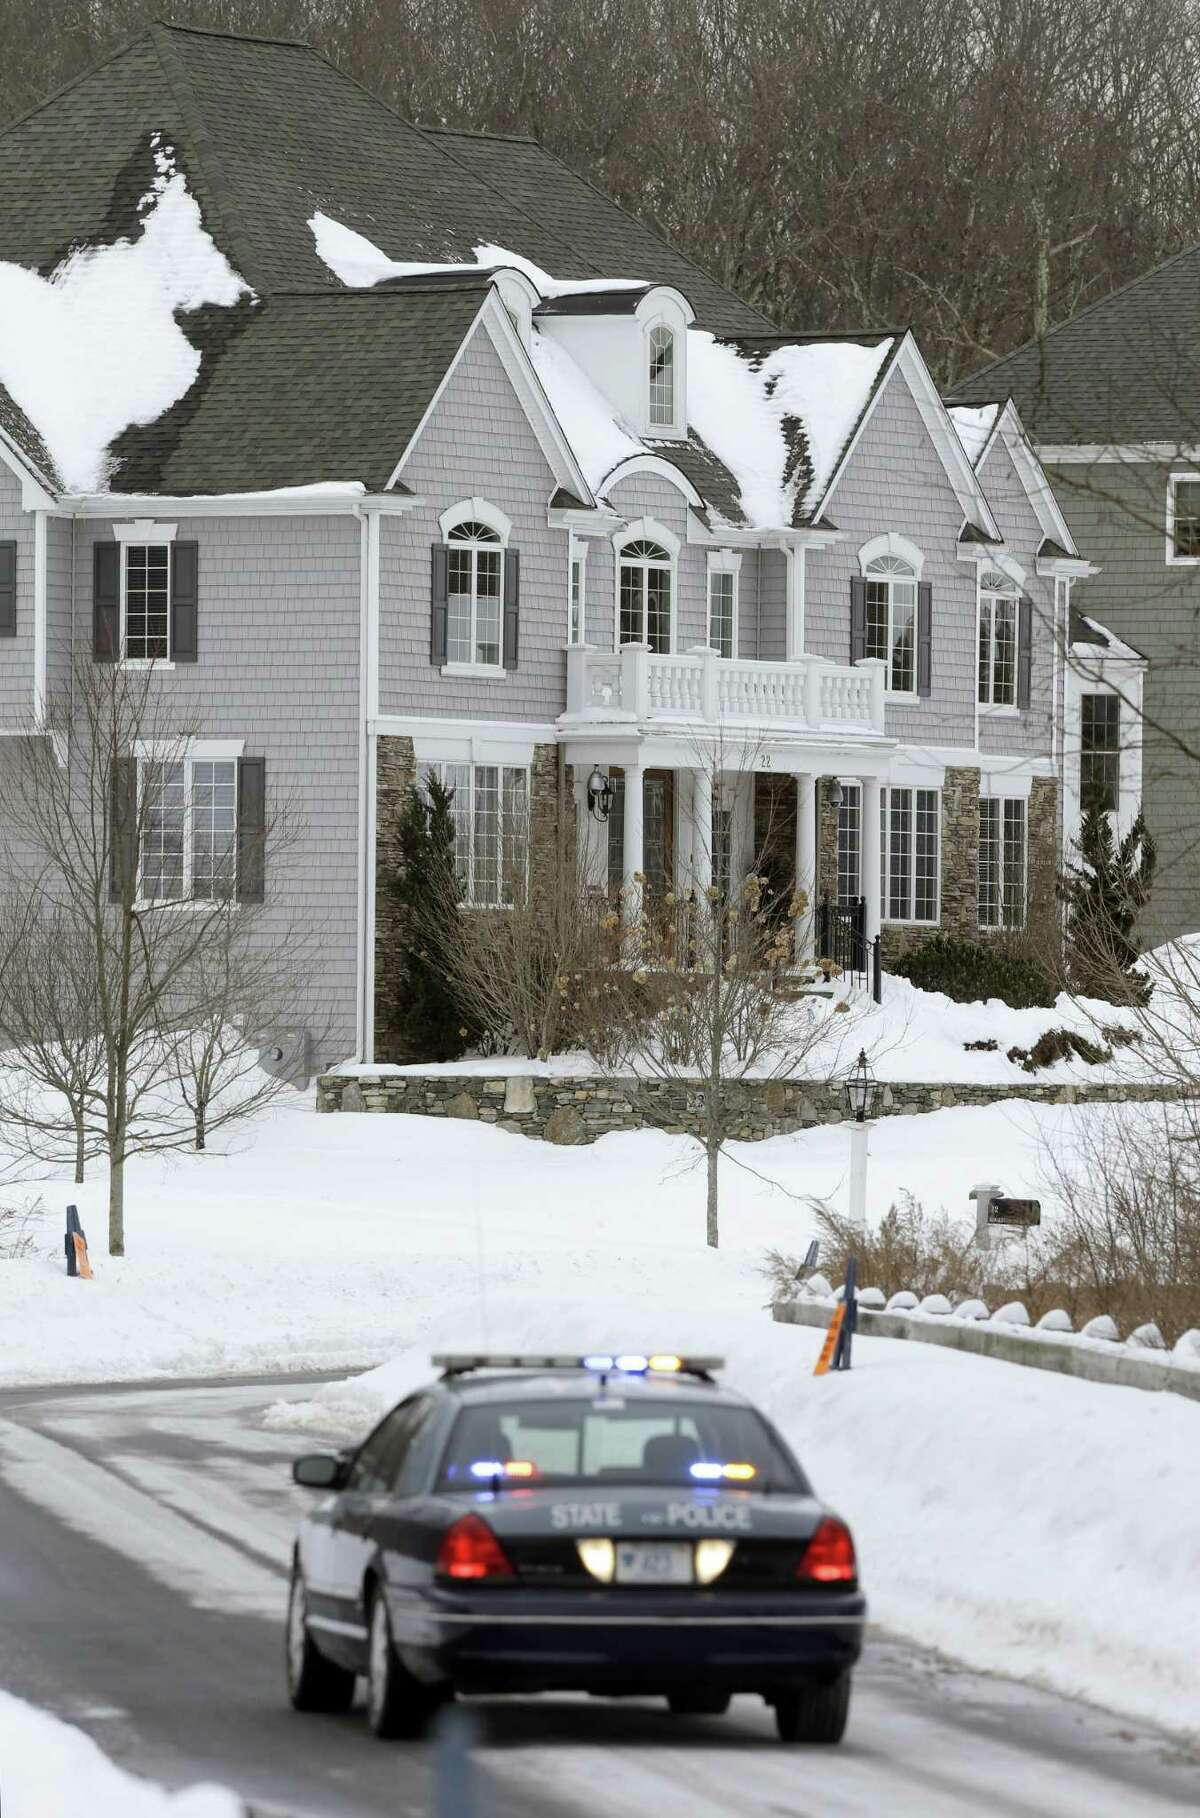 A State Police car sits on the street in front of the North Attleborough, Mass., home of former New England Patriots football player Aaron Hernandez, rear, during a site visit by the jury in his murder trial Friday. Hernandez is charged with killing semiprofessional football player Odin Lloyd in 2013. The jury toured several sites related to the case, including Hernandez's home, Lloyd's home, and the industrial park where Lloyd's body was found.